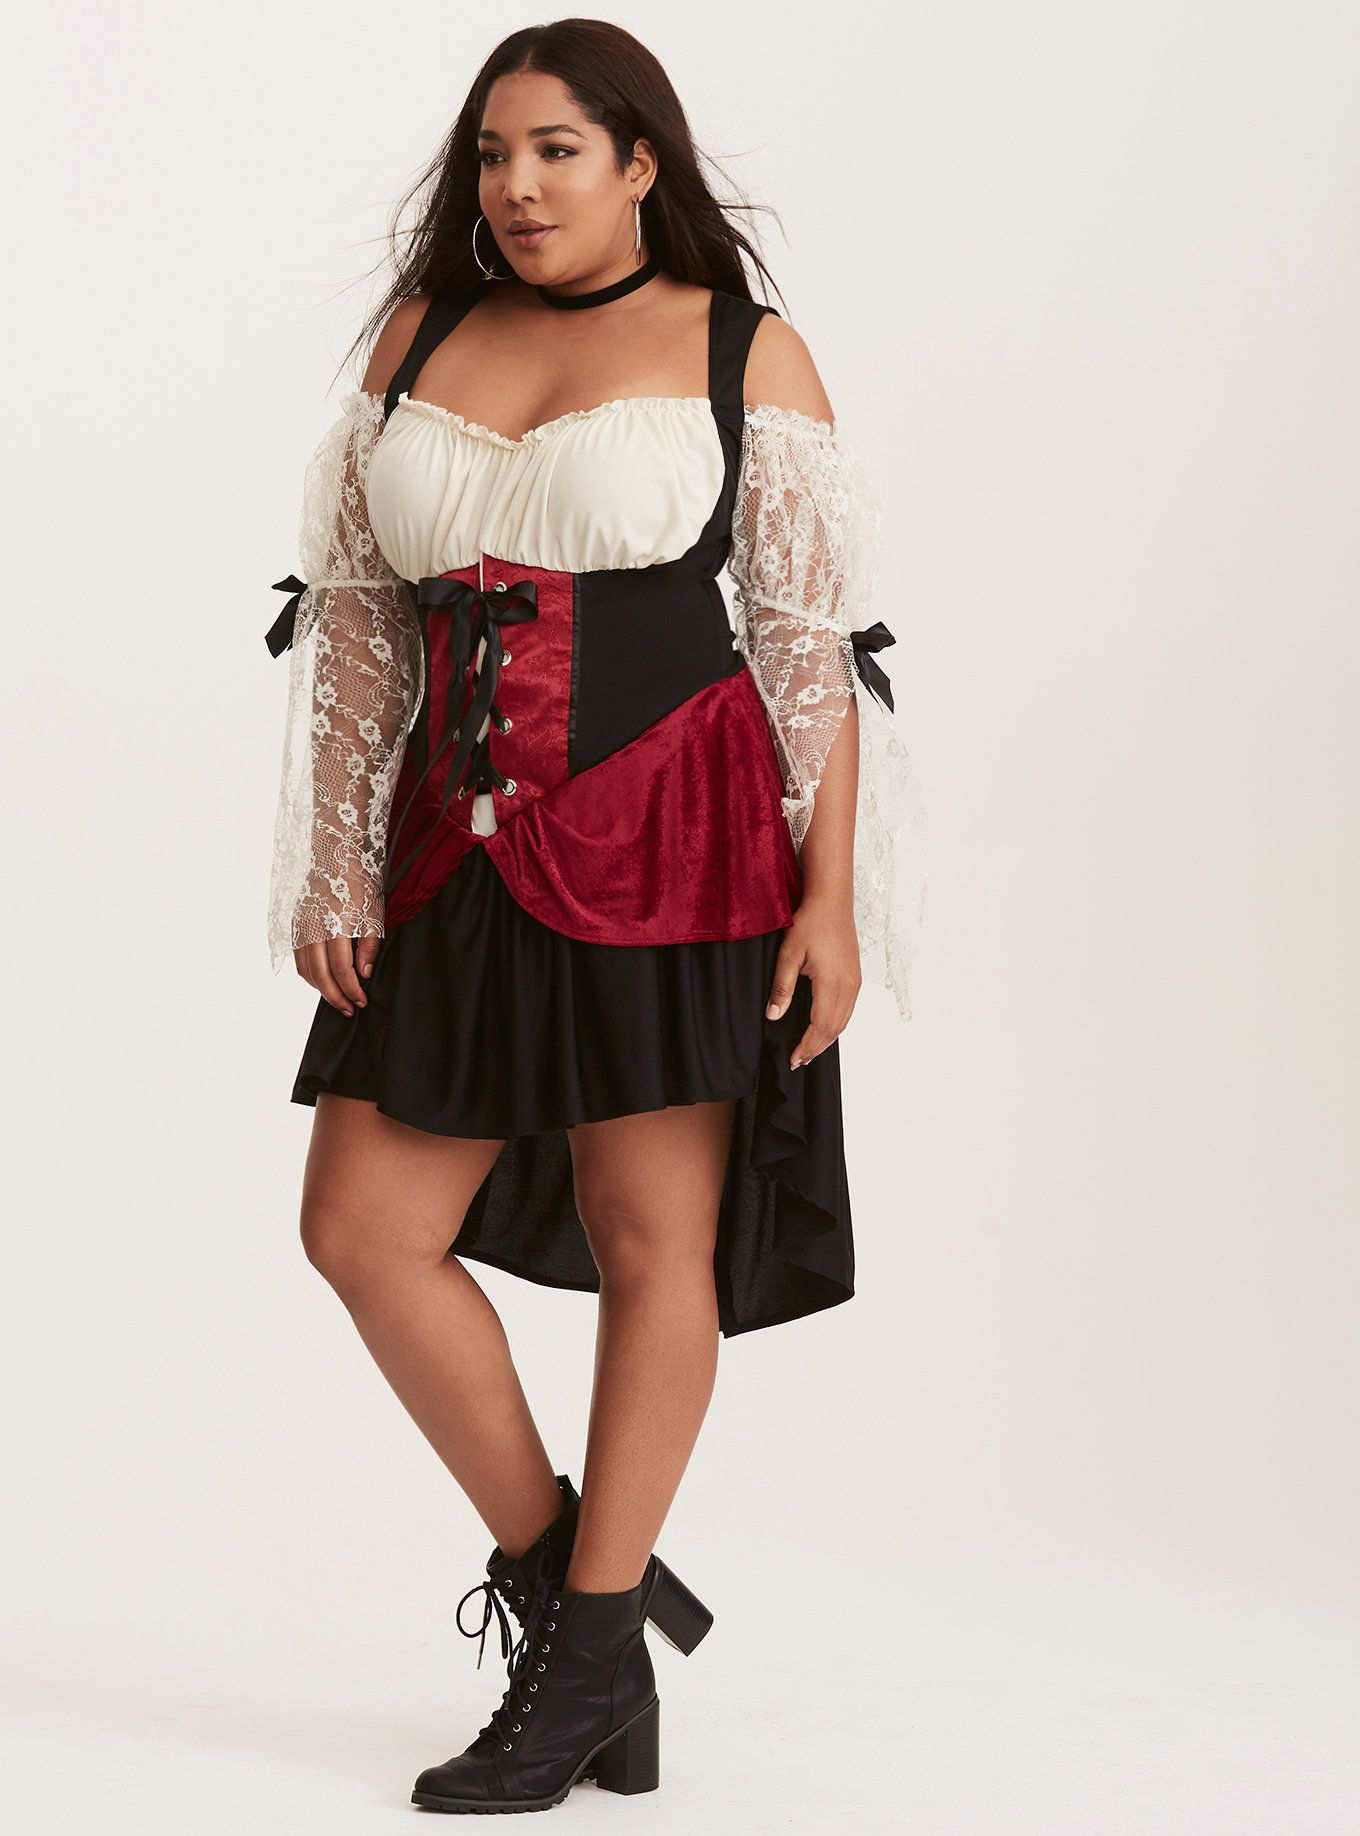 Pin On Torrid Finds